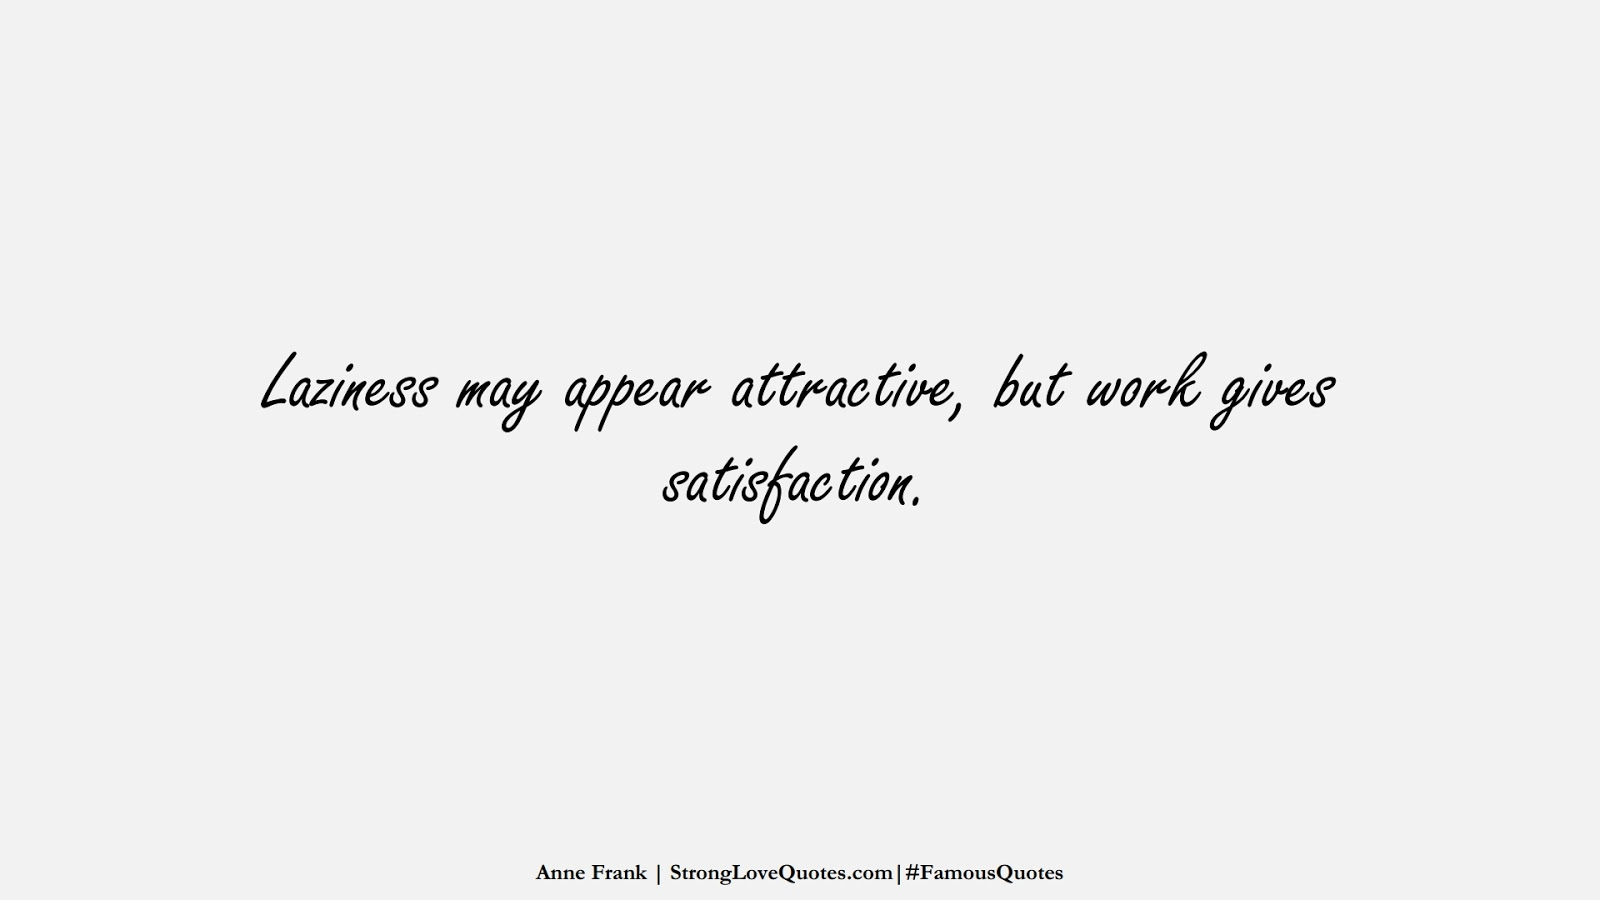 Laziness may appear attractive, but work gives satisfaction. (Anne Frank);  #FamousQuotes